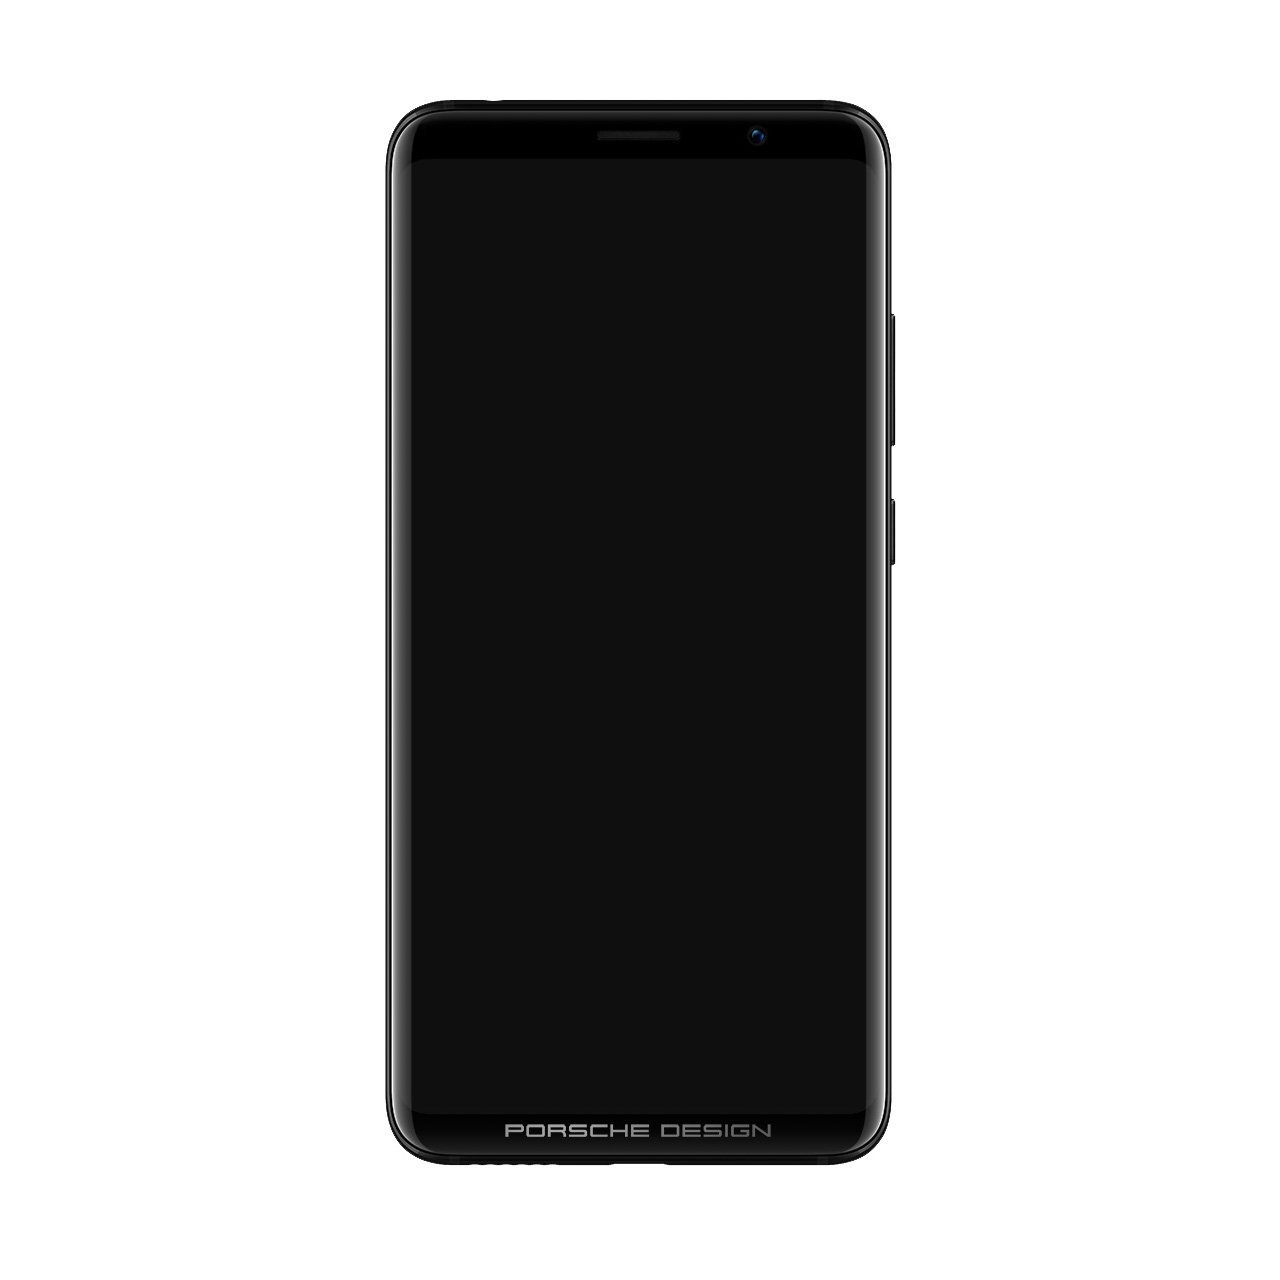 huawei mate rs porsche design dualsim schwarz 256gb lte. Black Bedroom Furniture Sets. Home Design Ideas